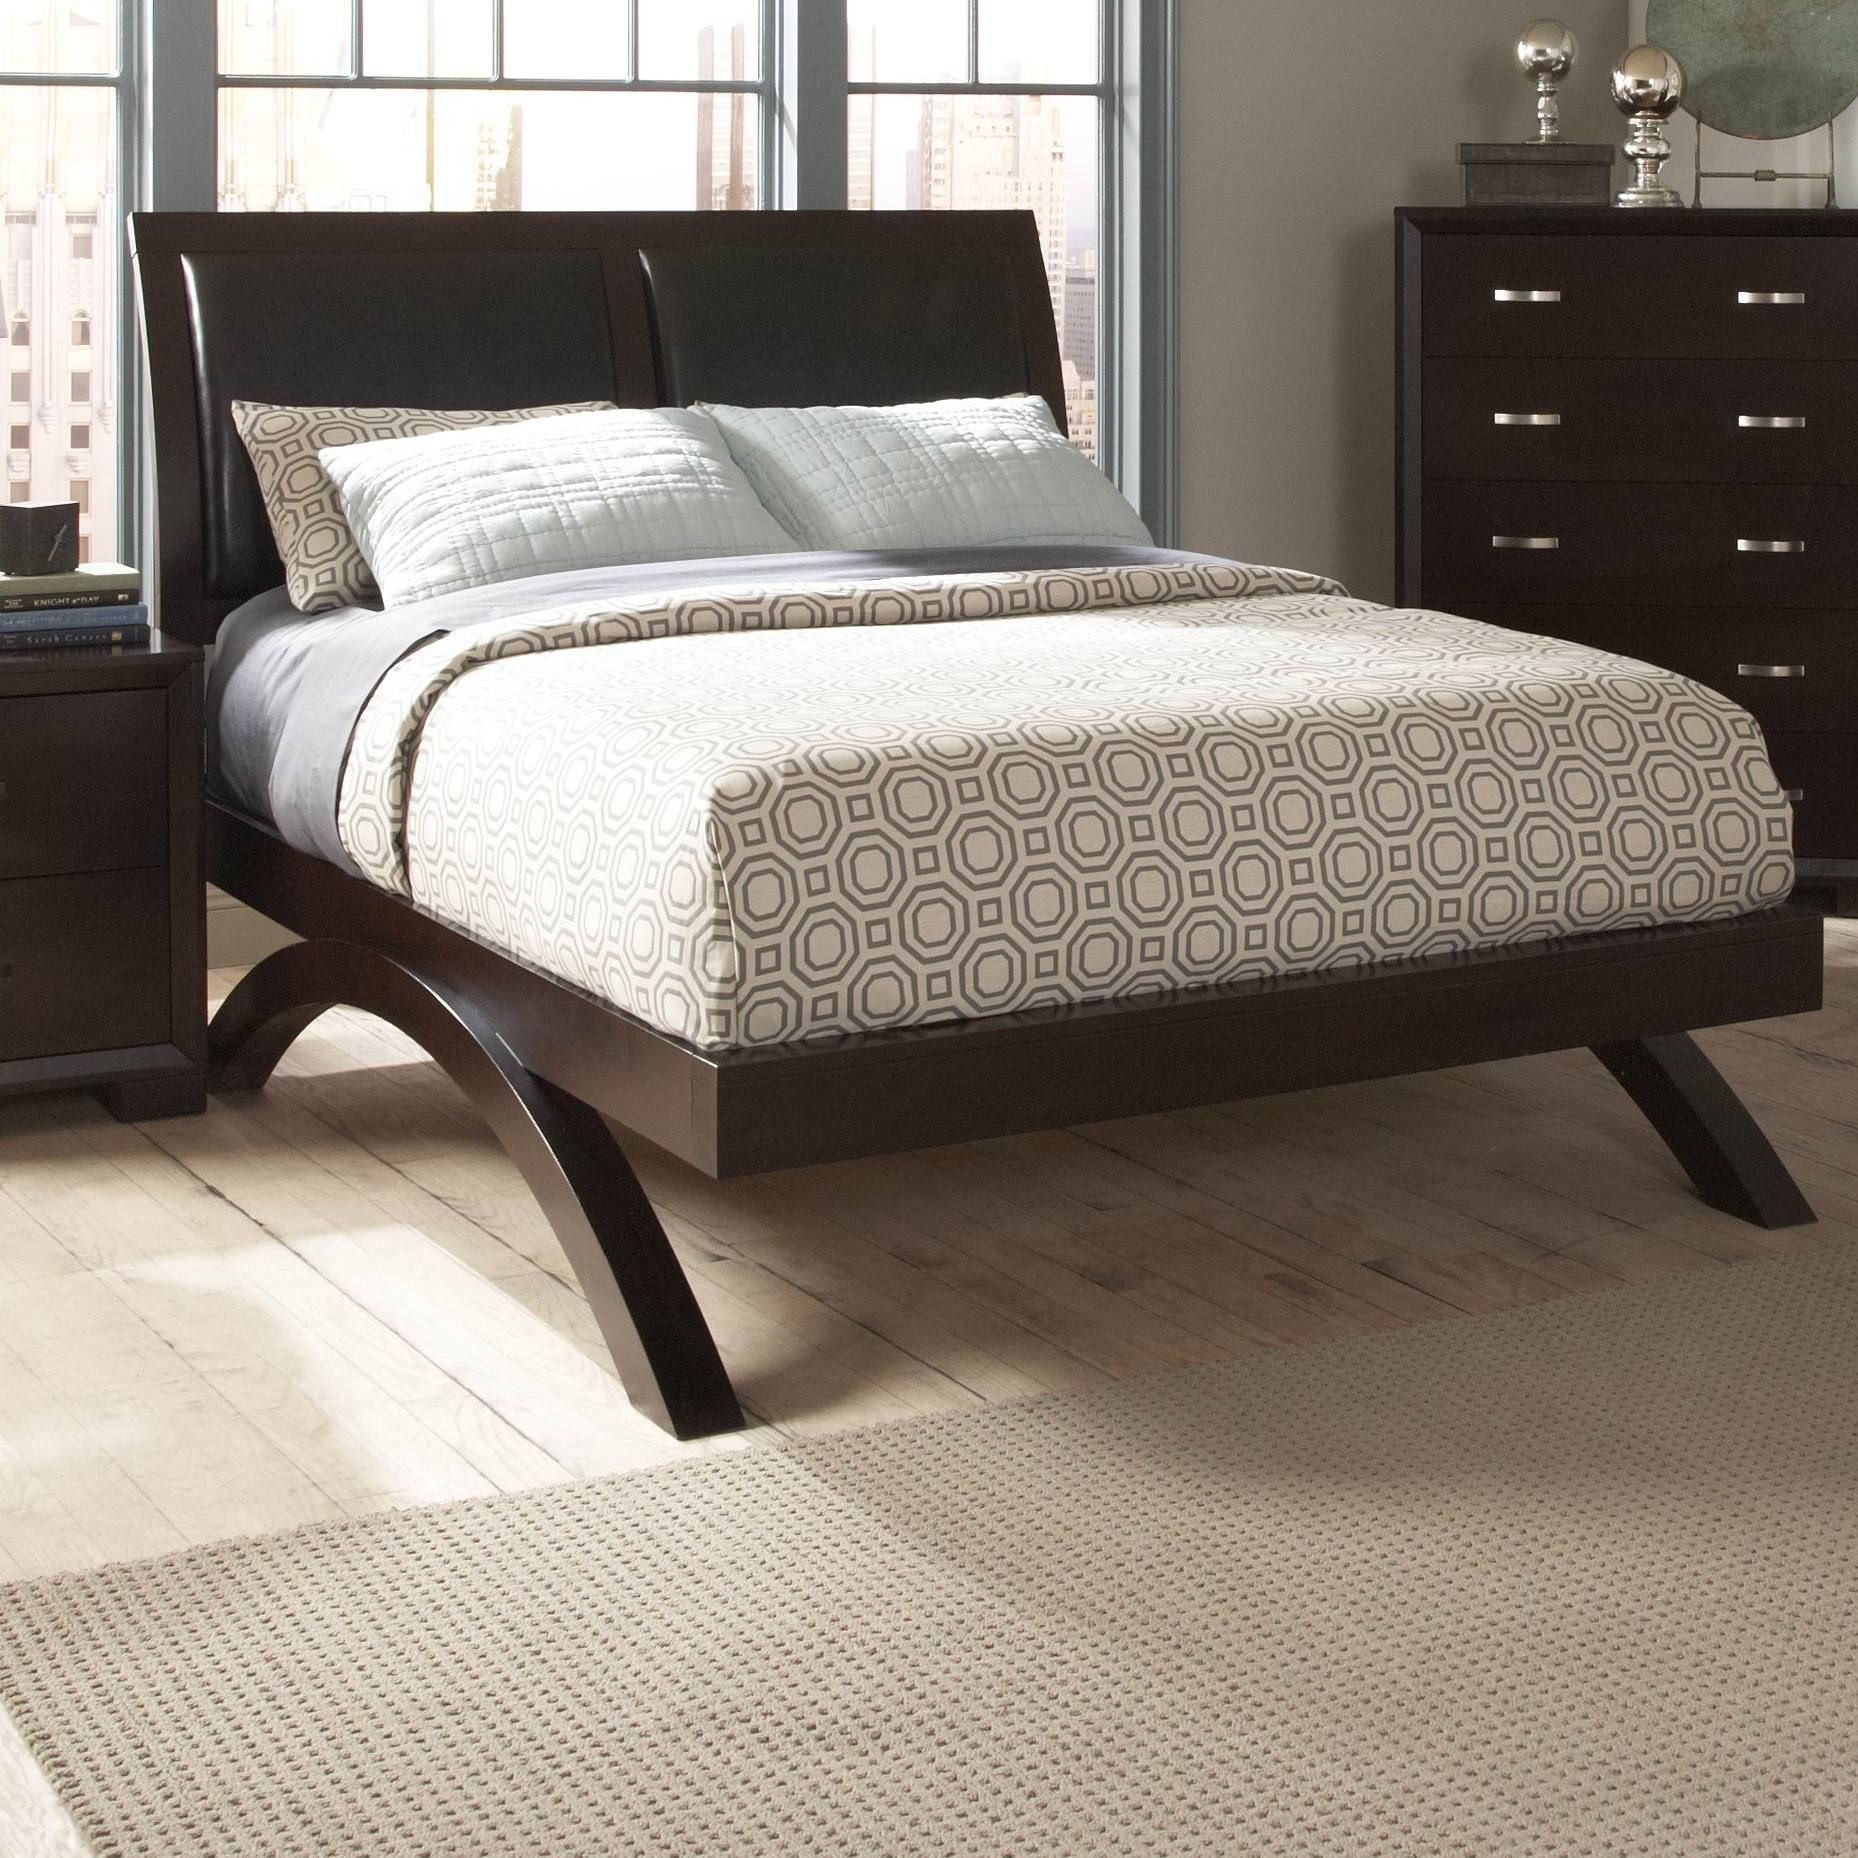 Best Love This Platform Bed When I M Ready To Make A Change 640 x 480